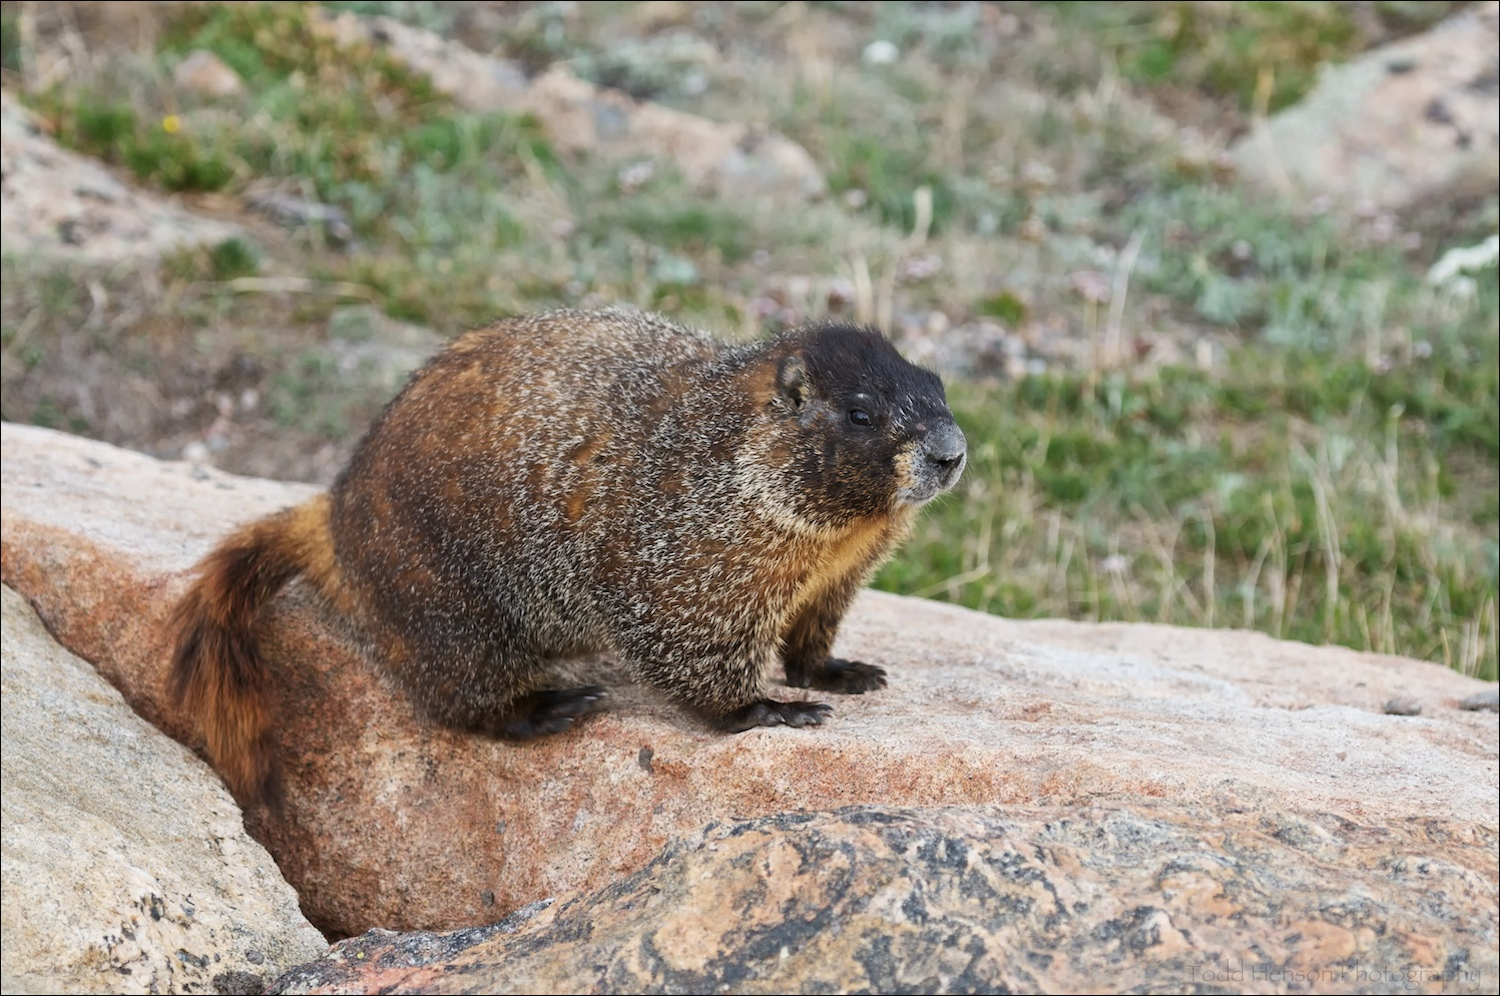 Yellow-bellied Marmot near parking lot. This one kept trying to crawl into the underside of my car.